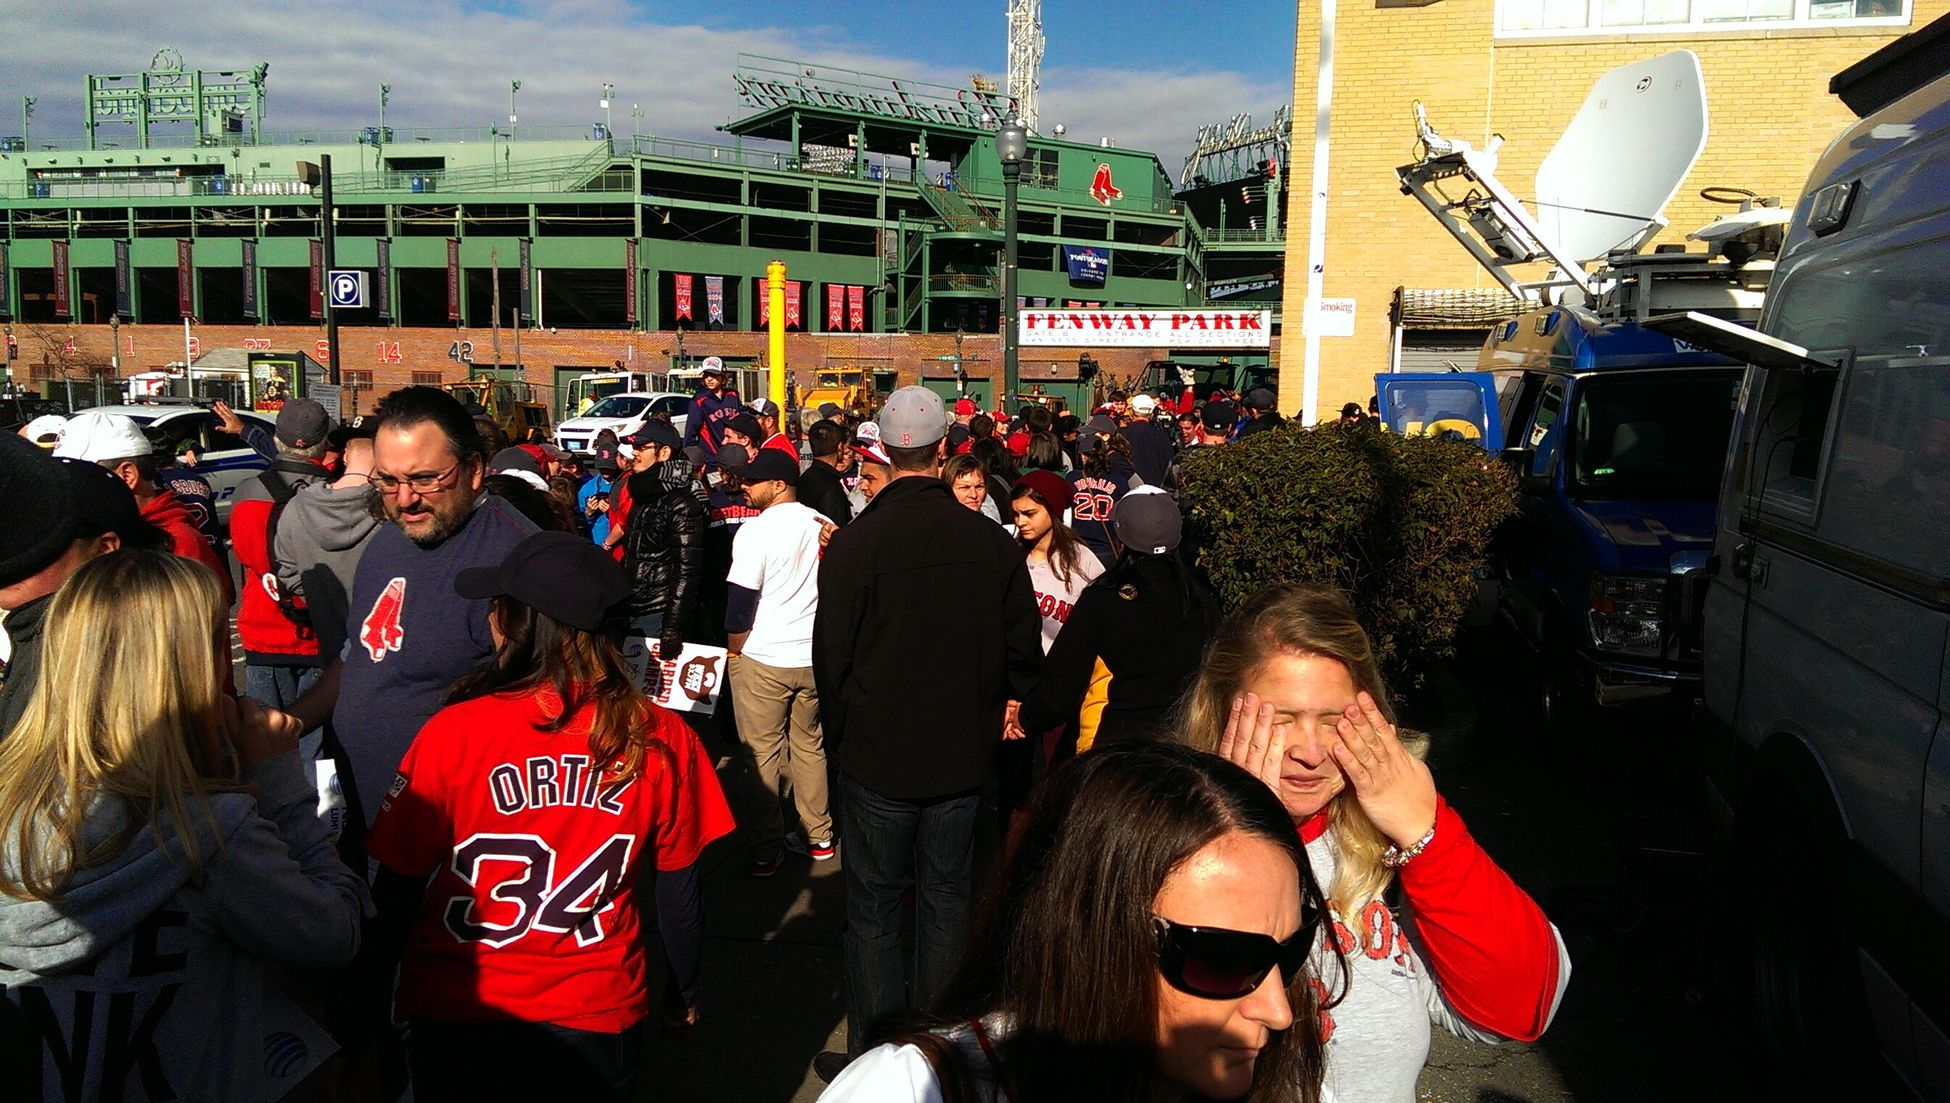 Boston Red Sox rolling rallyParade